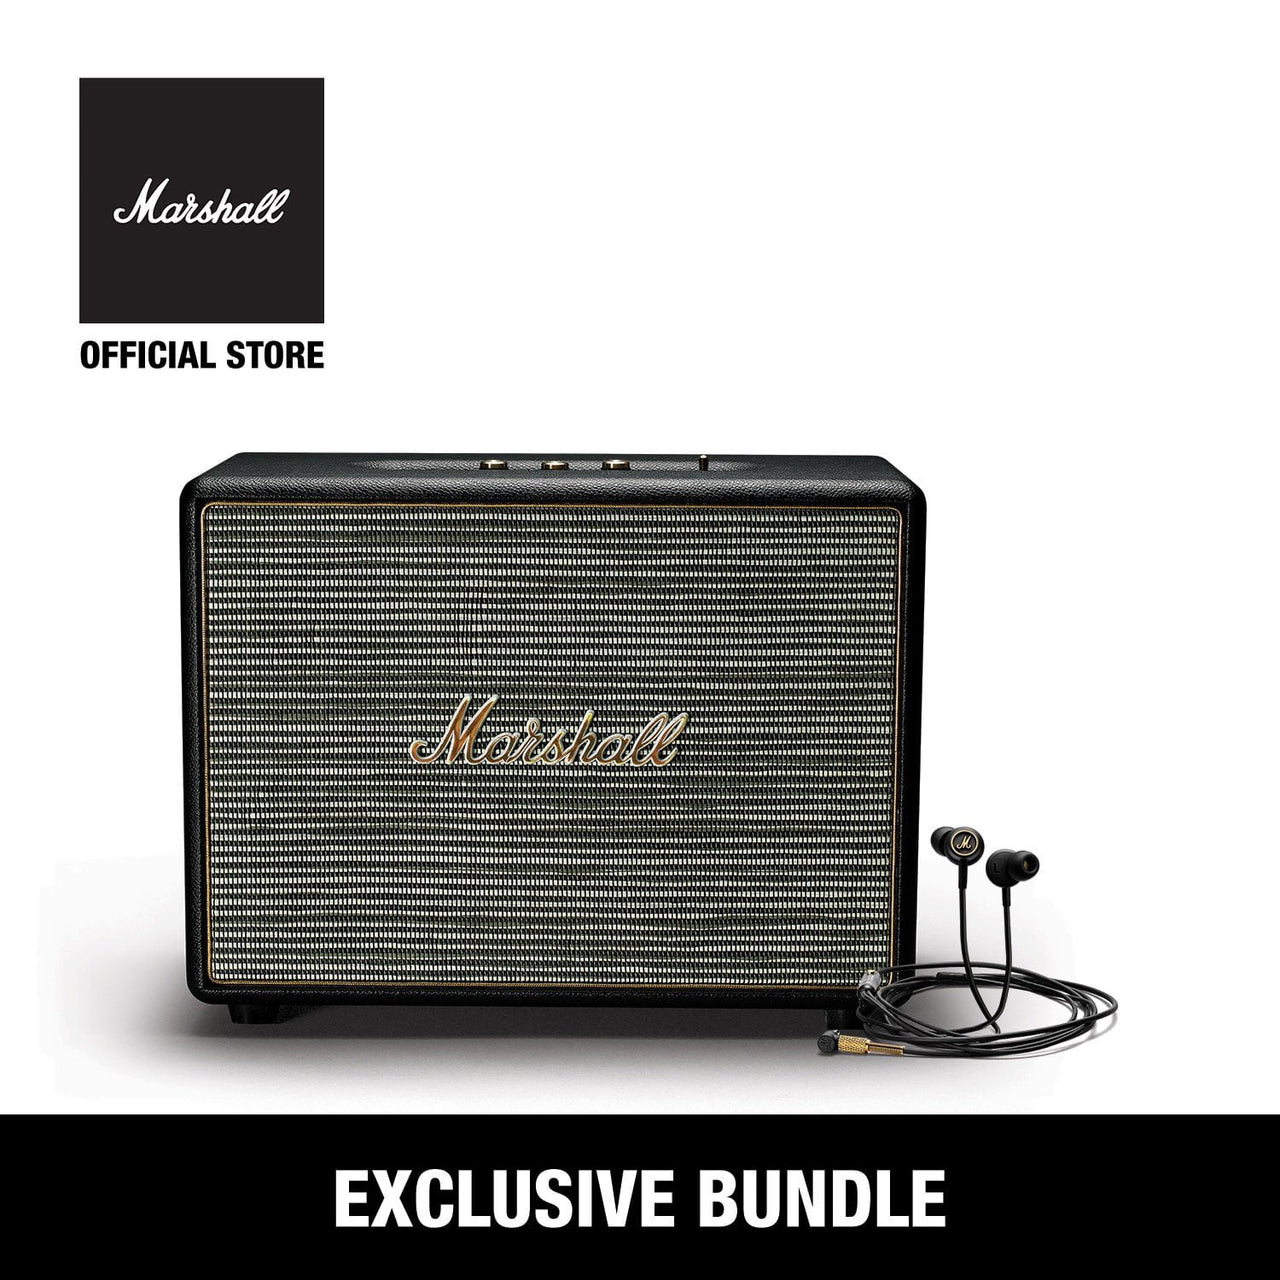 BUNDLE Woburn Black + Mode EQ Black&Brass, Marshall, Marshall, ASH Asia